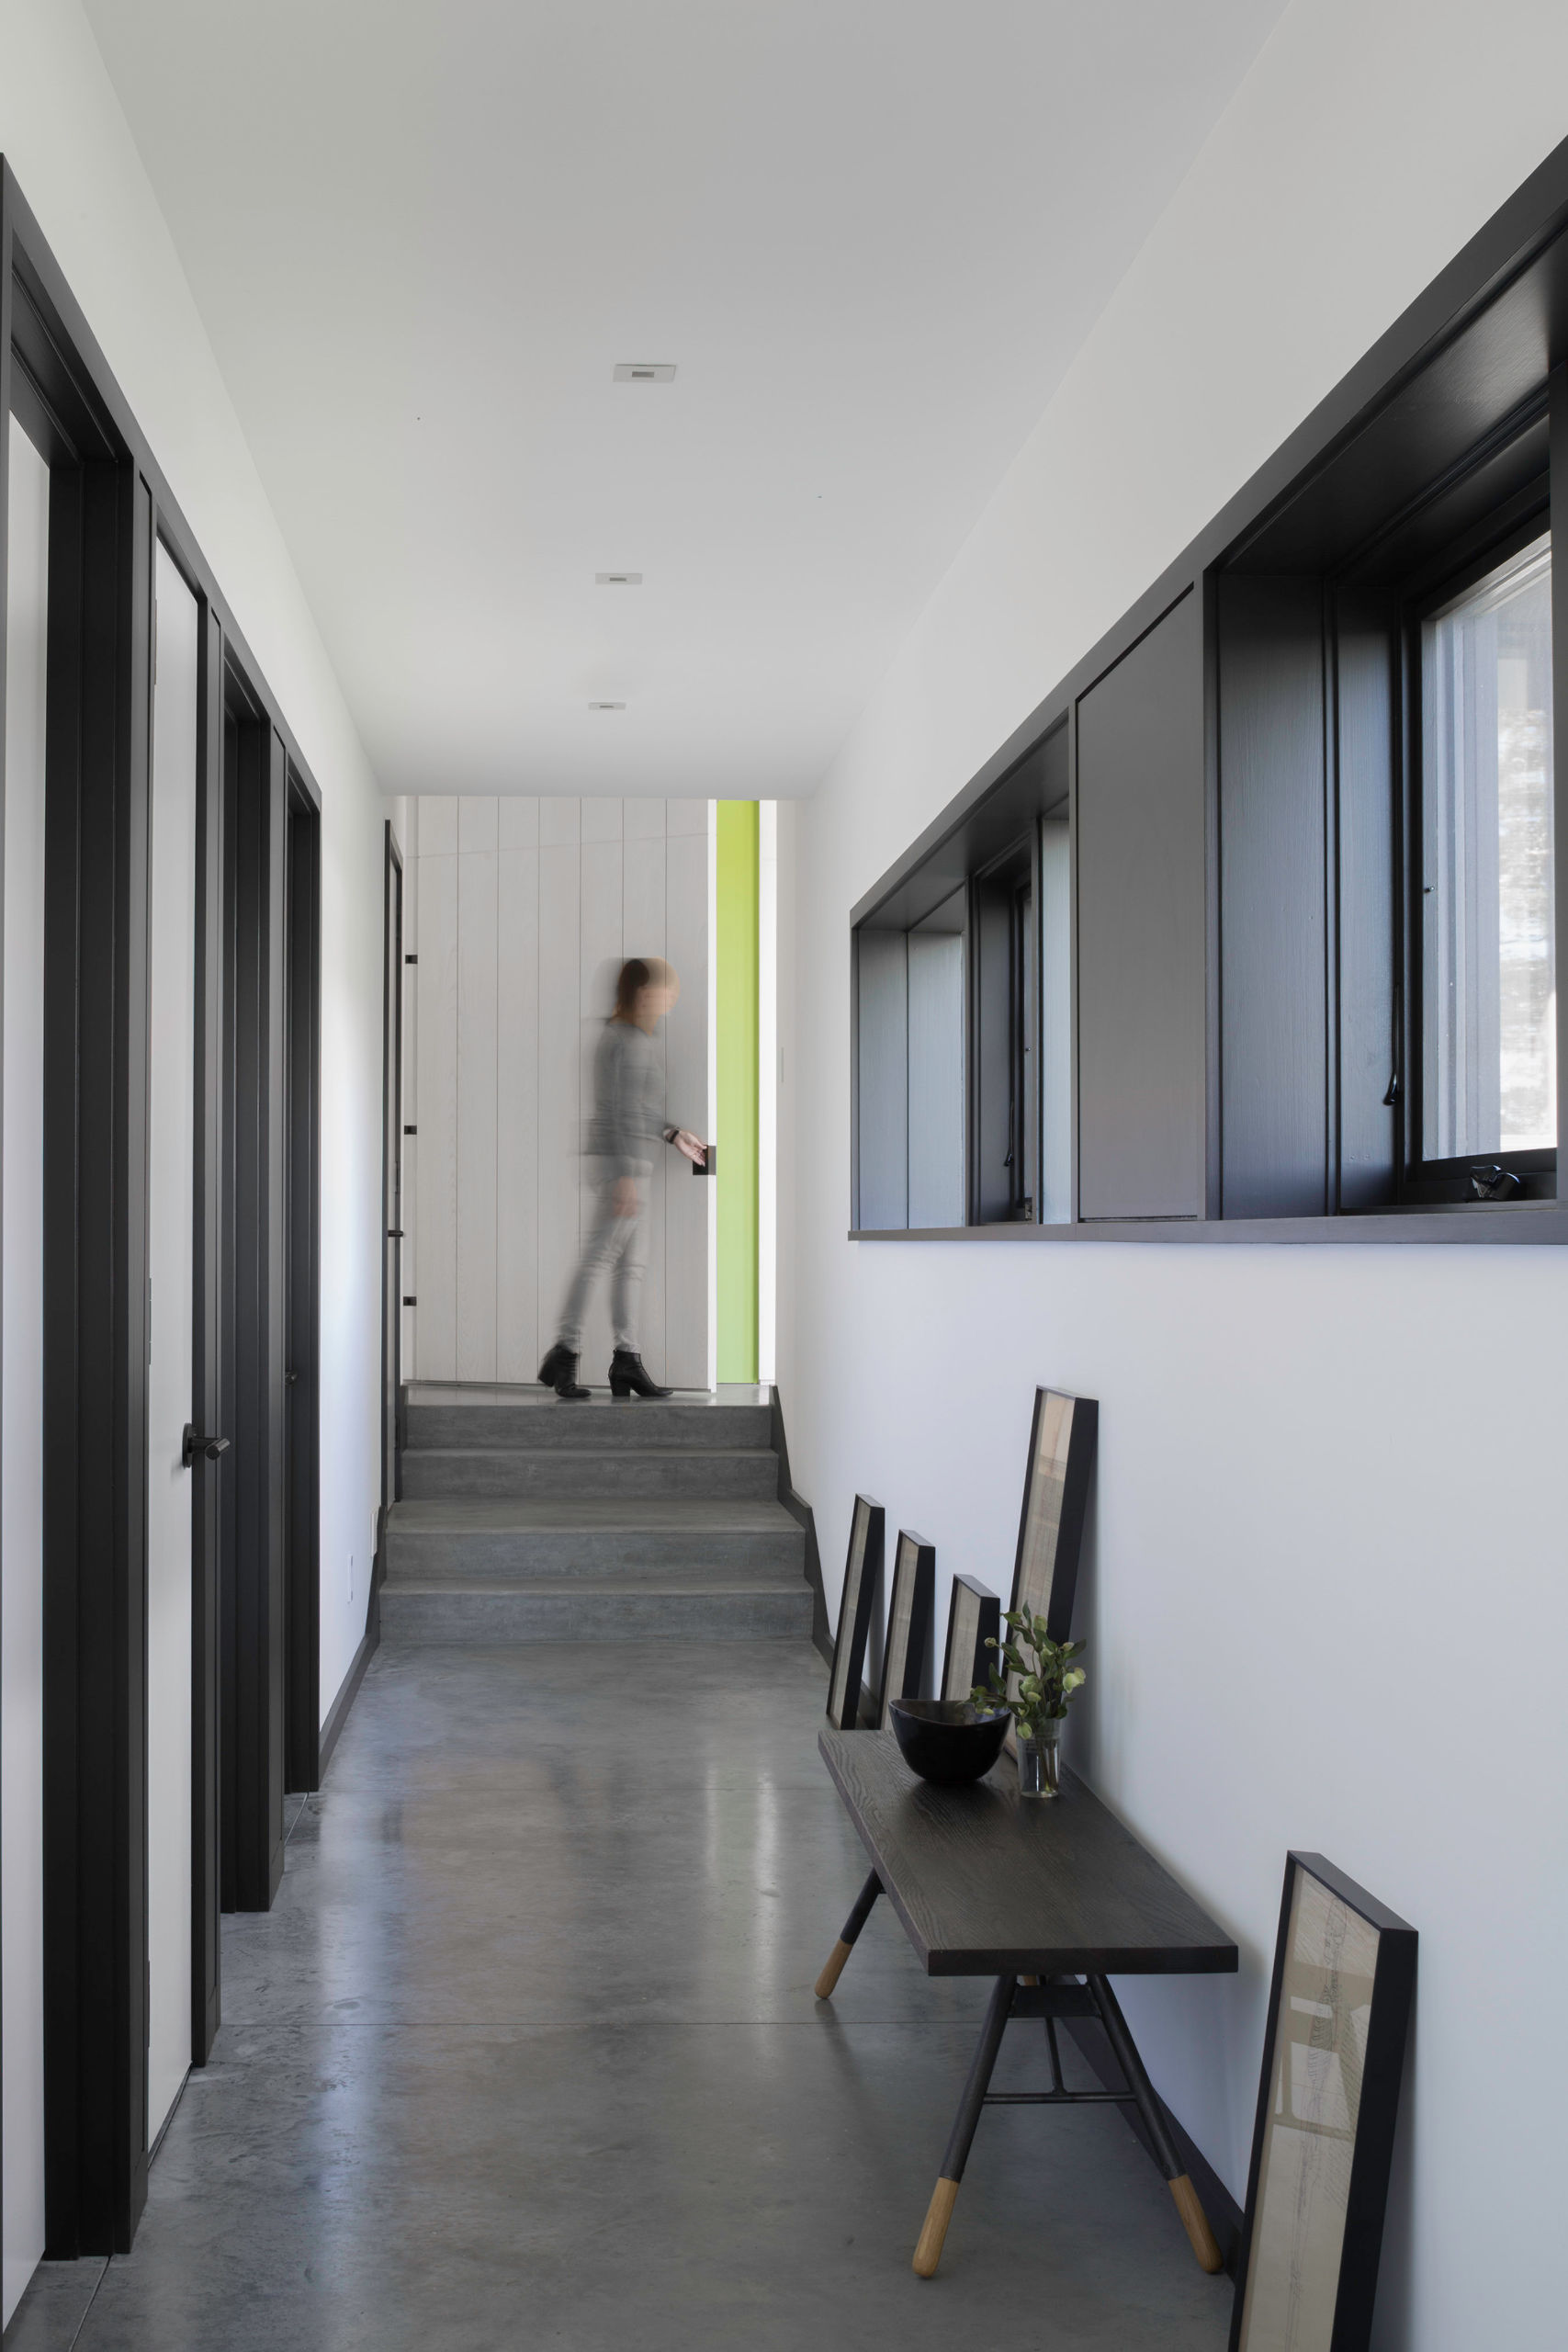 Looking down the hallway in the bedroom wing, with polished concrete floor and row of high windows along right side